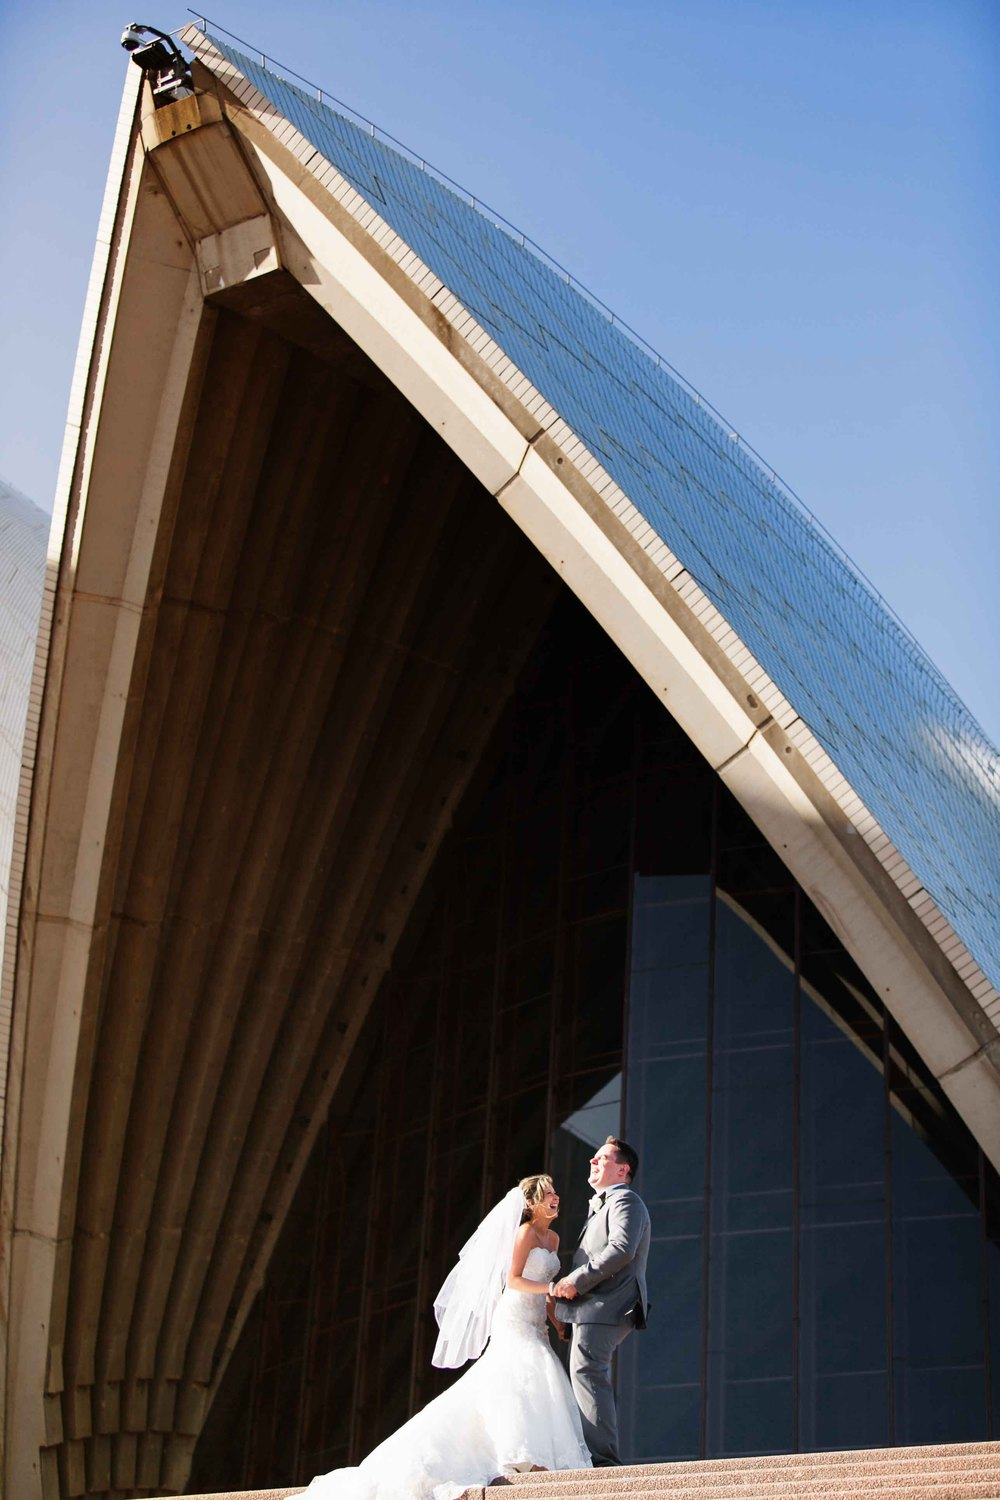 Kylie and Travis wedding at Sydney Opera House